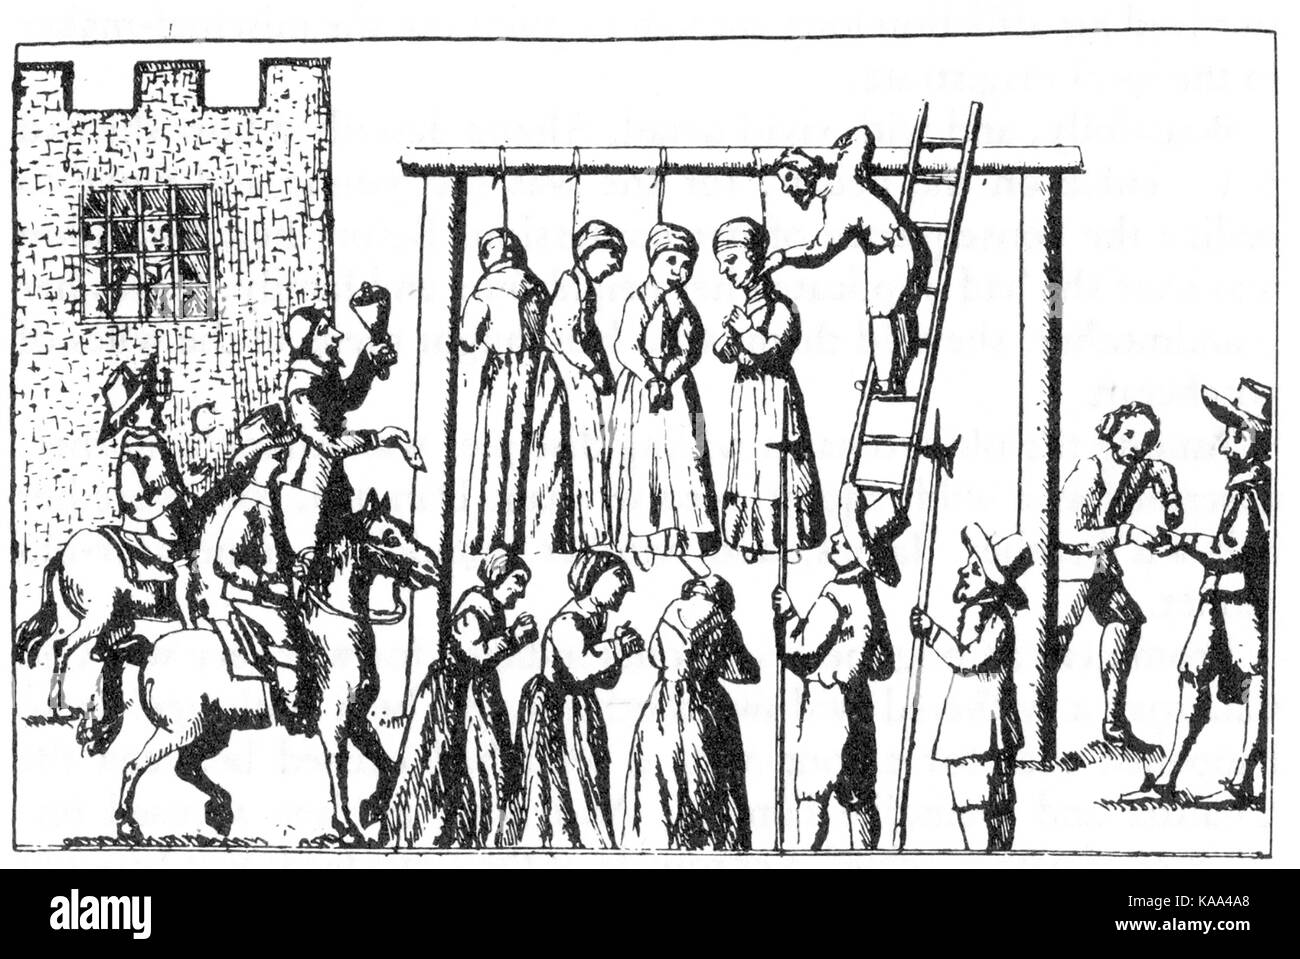 HANGING WITCHES from George Macenzie's 1678 book 'Law and Customs in Scotland in Matters Criminal' published - Stock Image